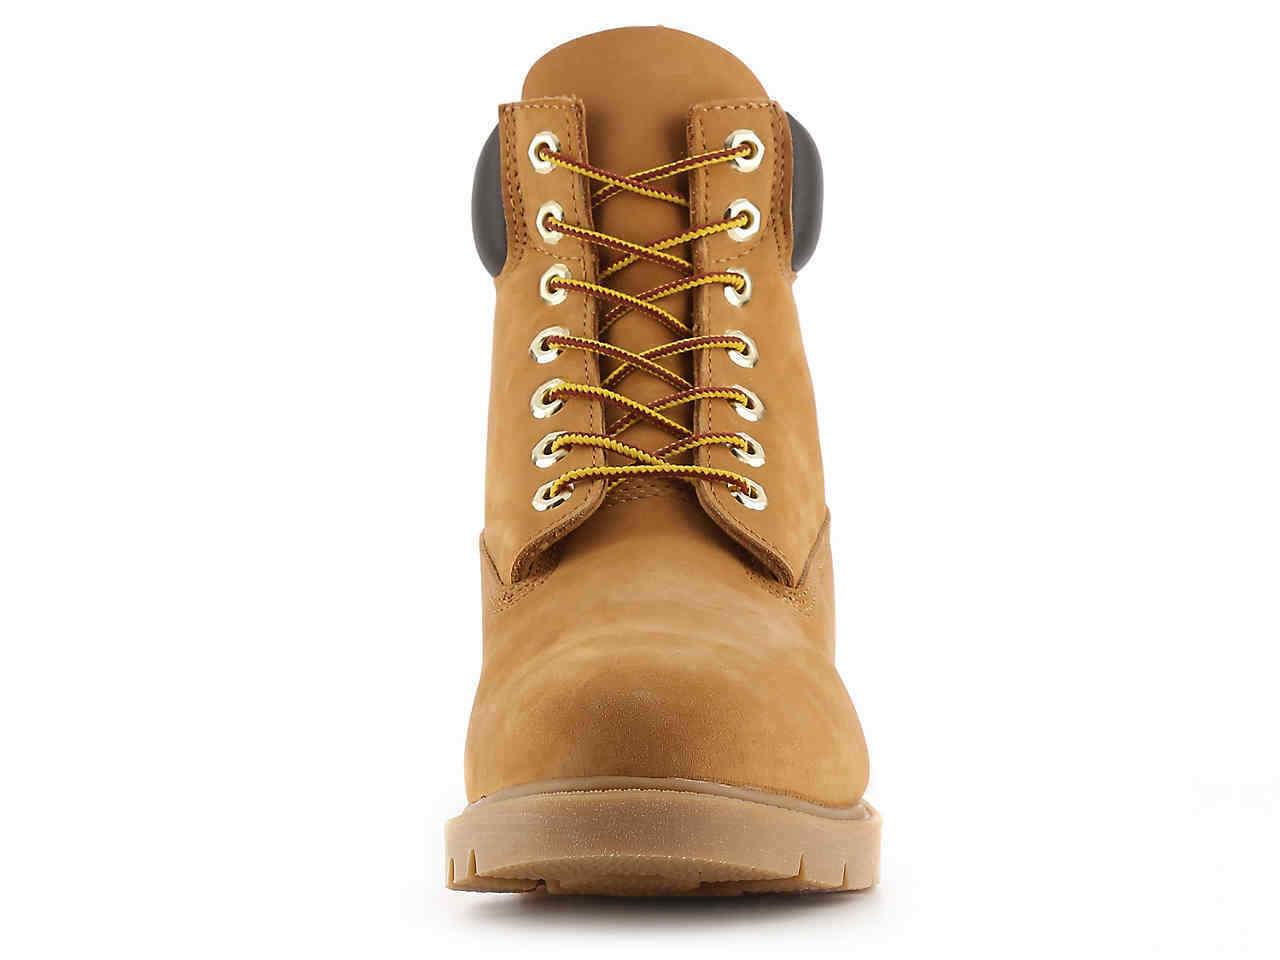 Timberland W/Padded Collar Waterproof Wheat Men's Boots